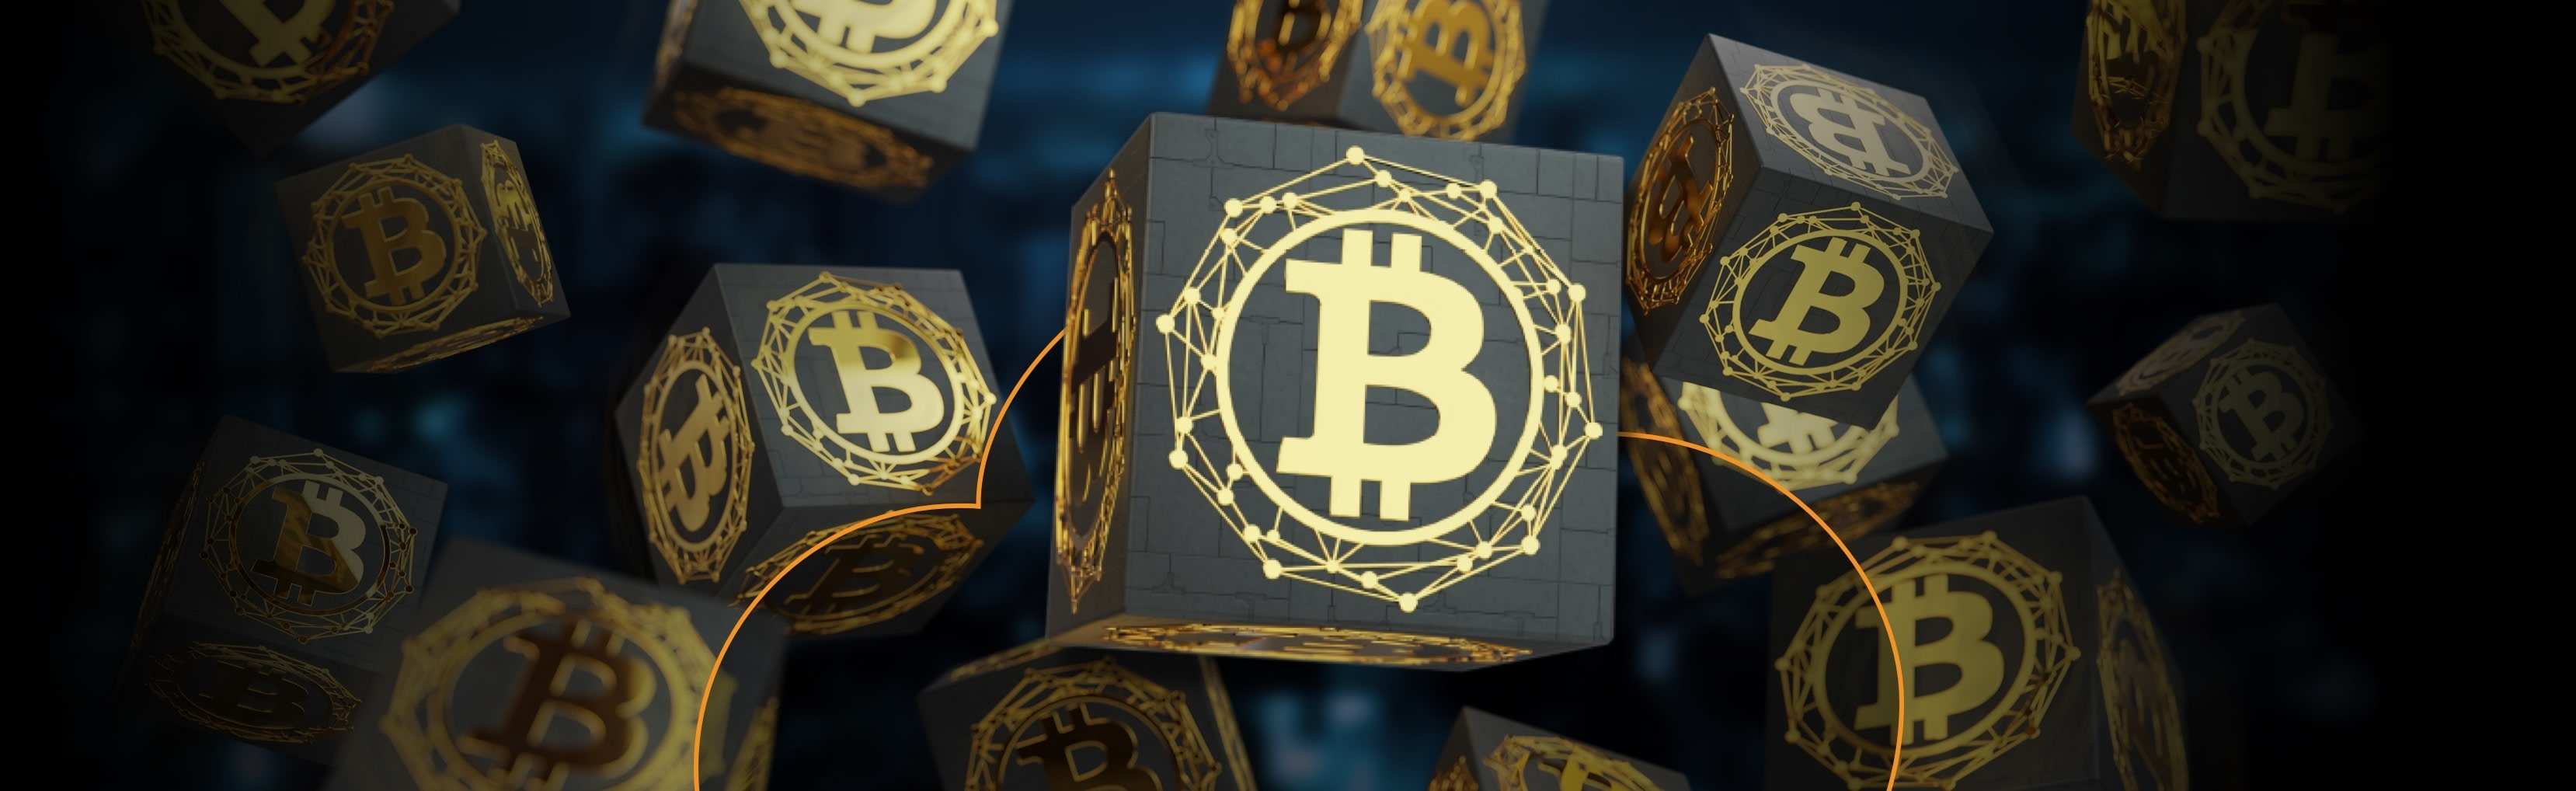 The Easiest Ways To Mine Bitcoin And Other Cryptocurrencies